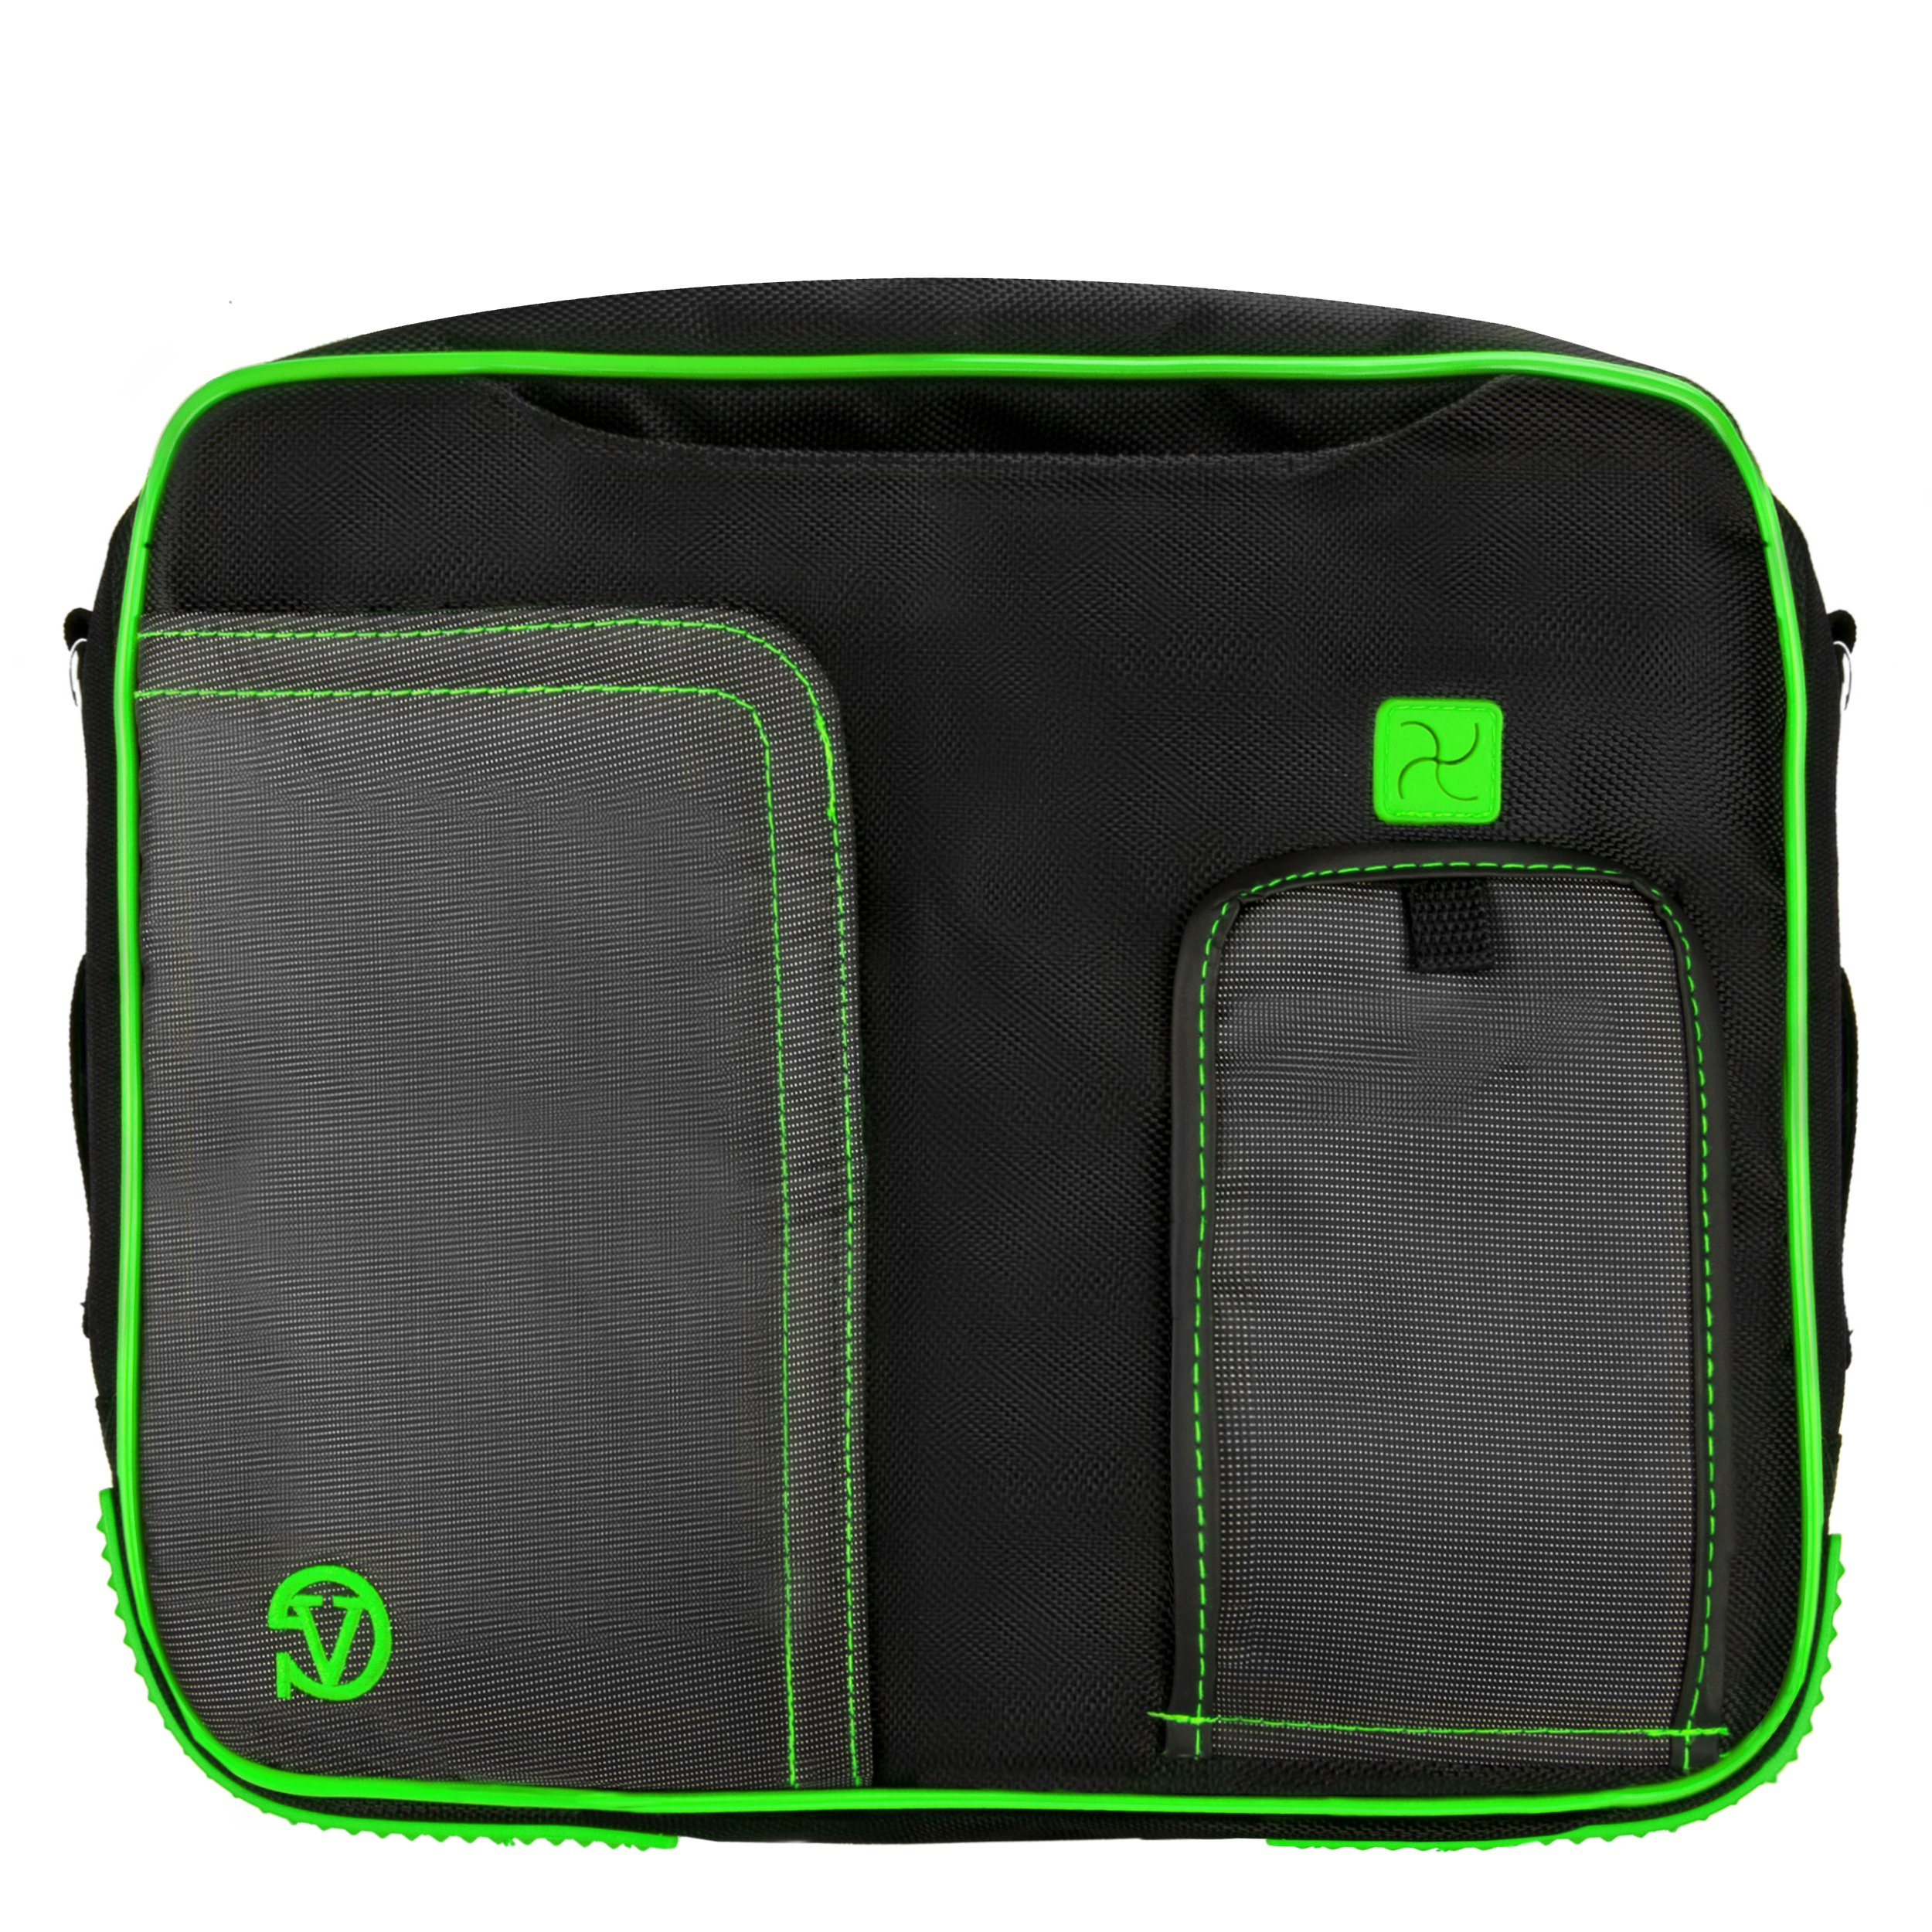 VanGoddy Pindar Messenger Carrying Bag for Samsung Galaxy Note PRO 12.2/Samsung Galaxy Tab PRO 12.2'' Tablets + Bluetooth Keyboard + Headphones (Green) by Vangoddy (Image #6)